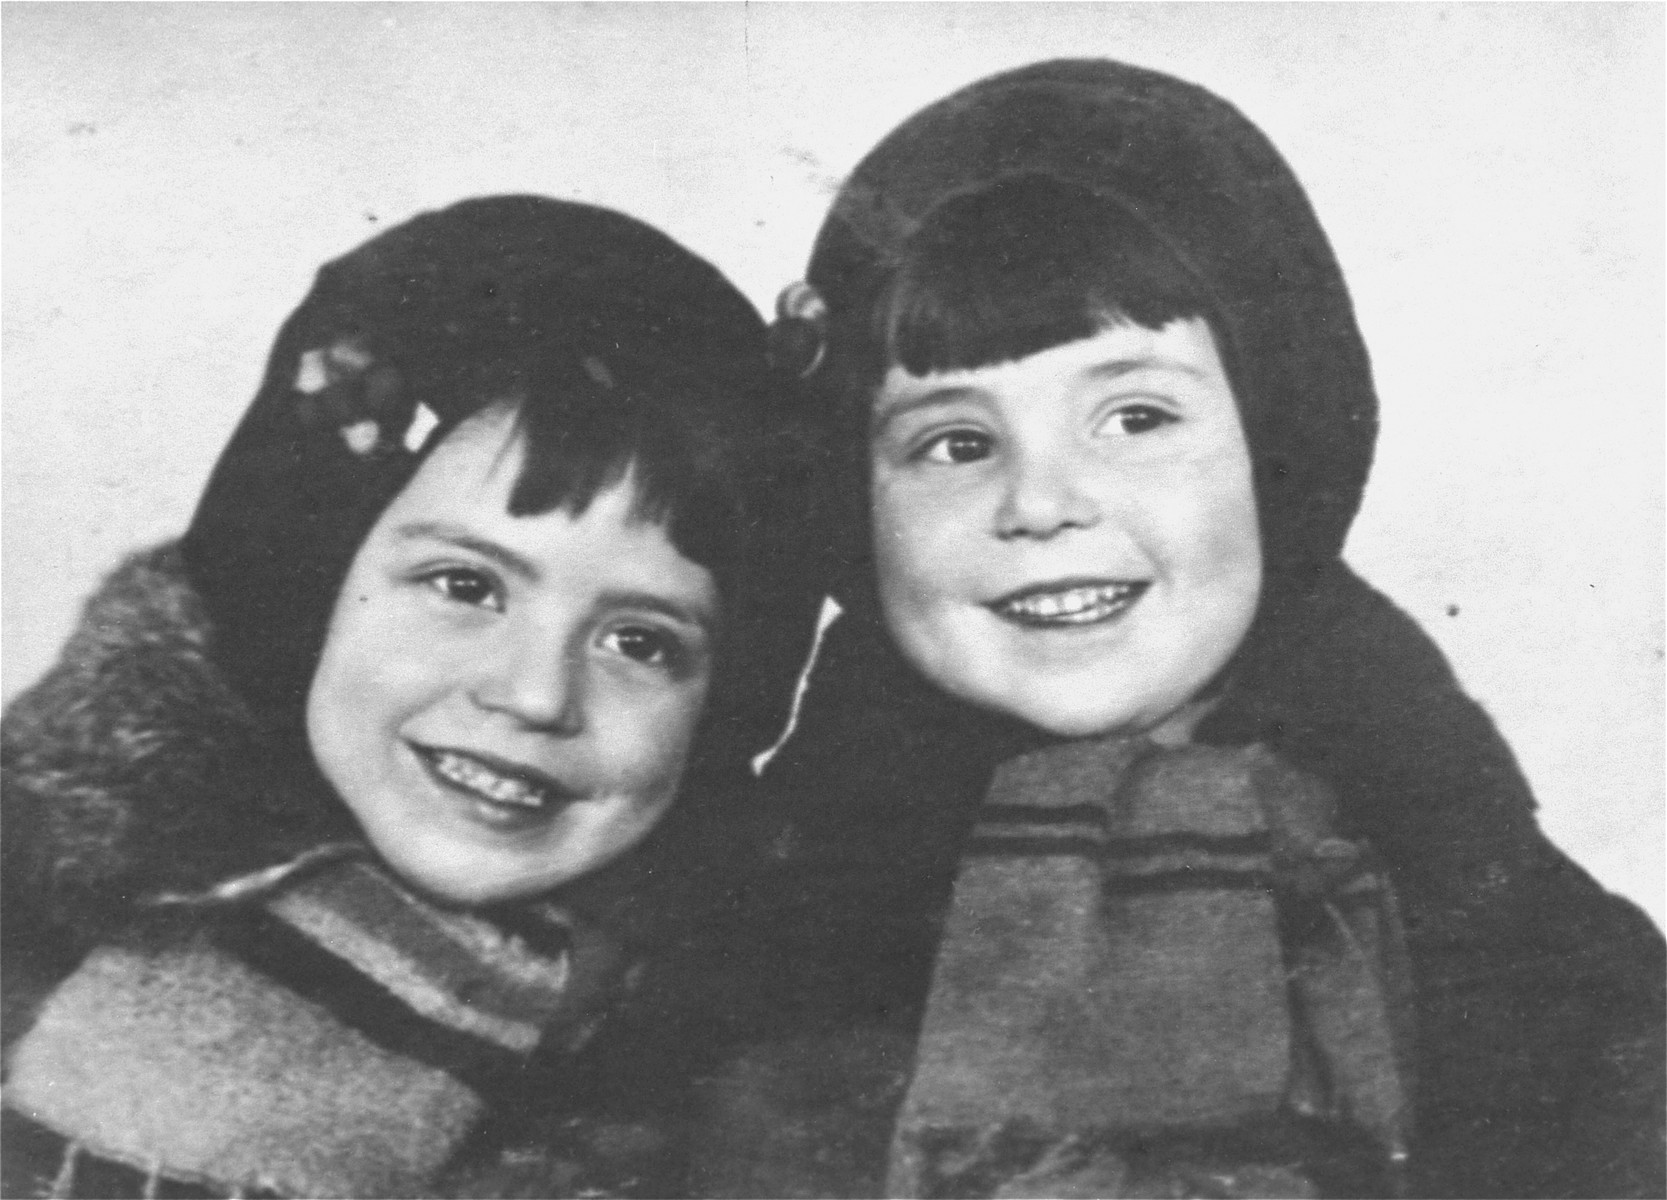 Portrait of four-year-old Malvina Babat and three-year-old Polina Babat, who were killed at Babi Yar.